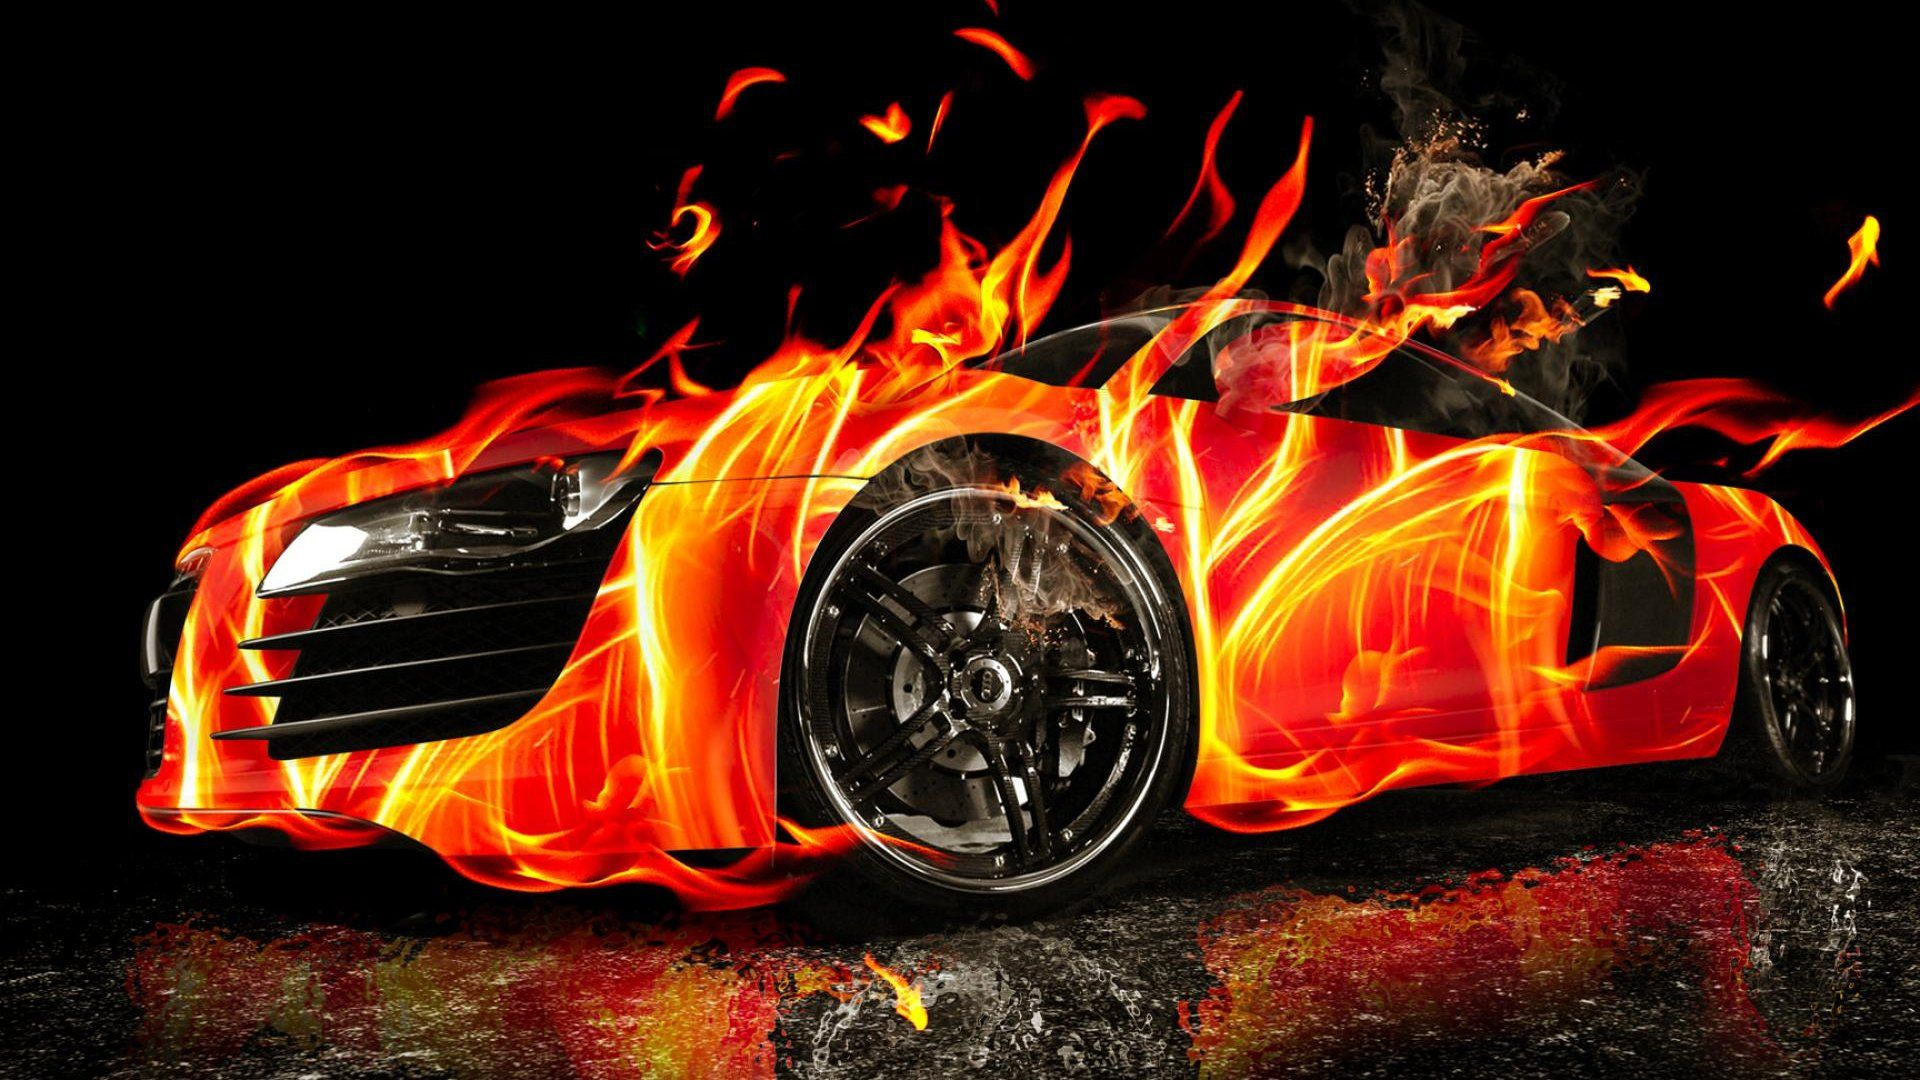 Whatever theme or topic you are into, we have a wallpaper for you. Hot Wheels Car Wallpaper 1920 1080 High Definition Wallpaper Cool Wallpapers Cars Sports Car Wallpaper Car Wallpapers